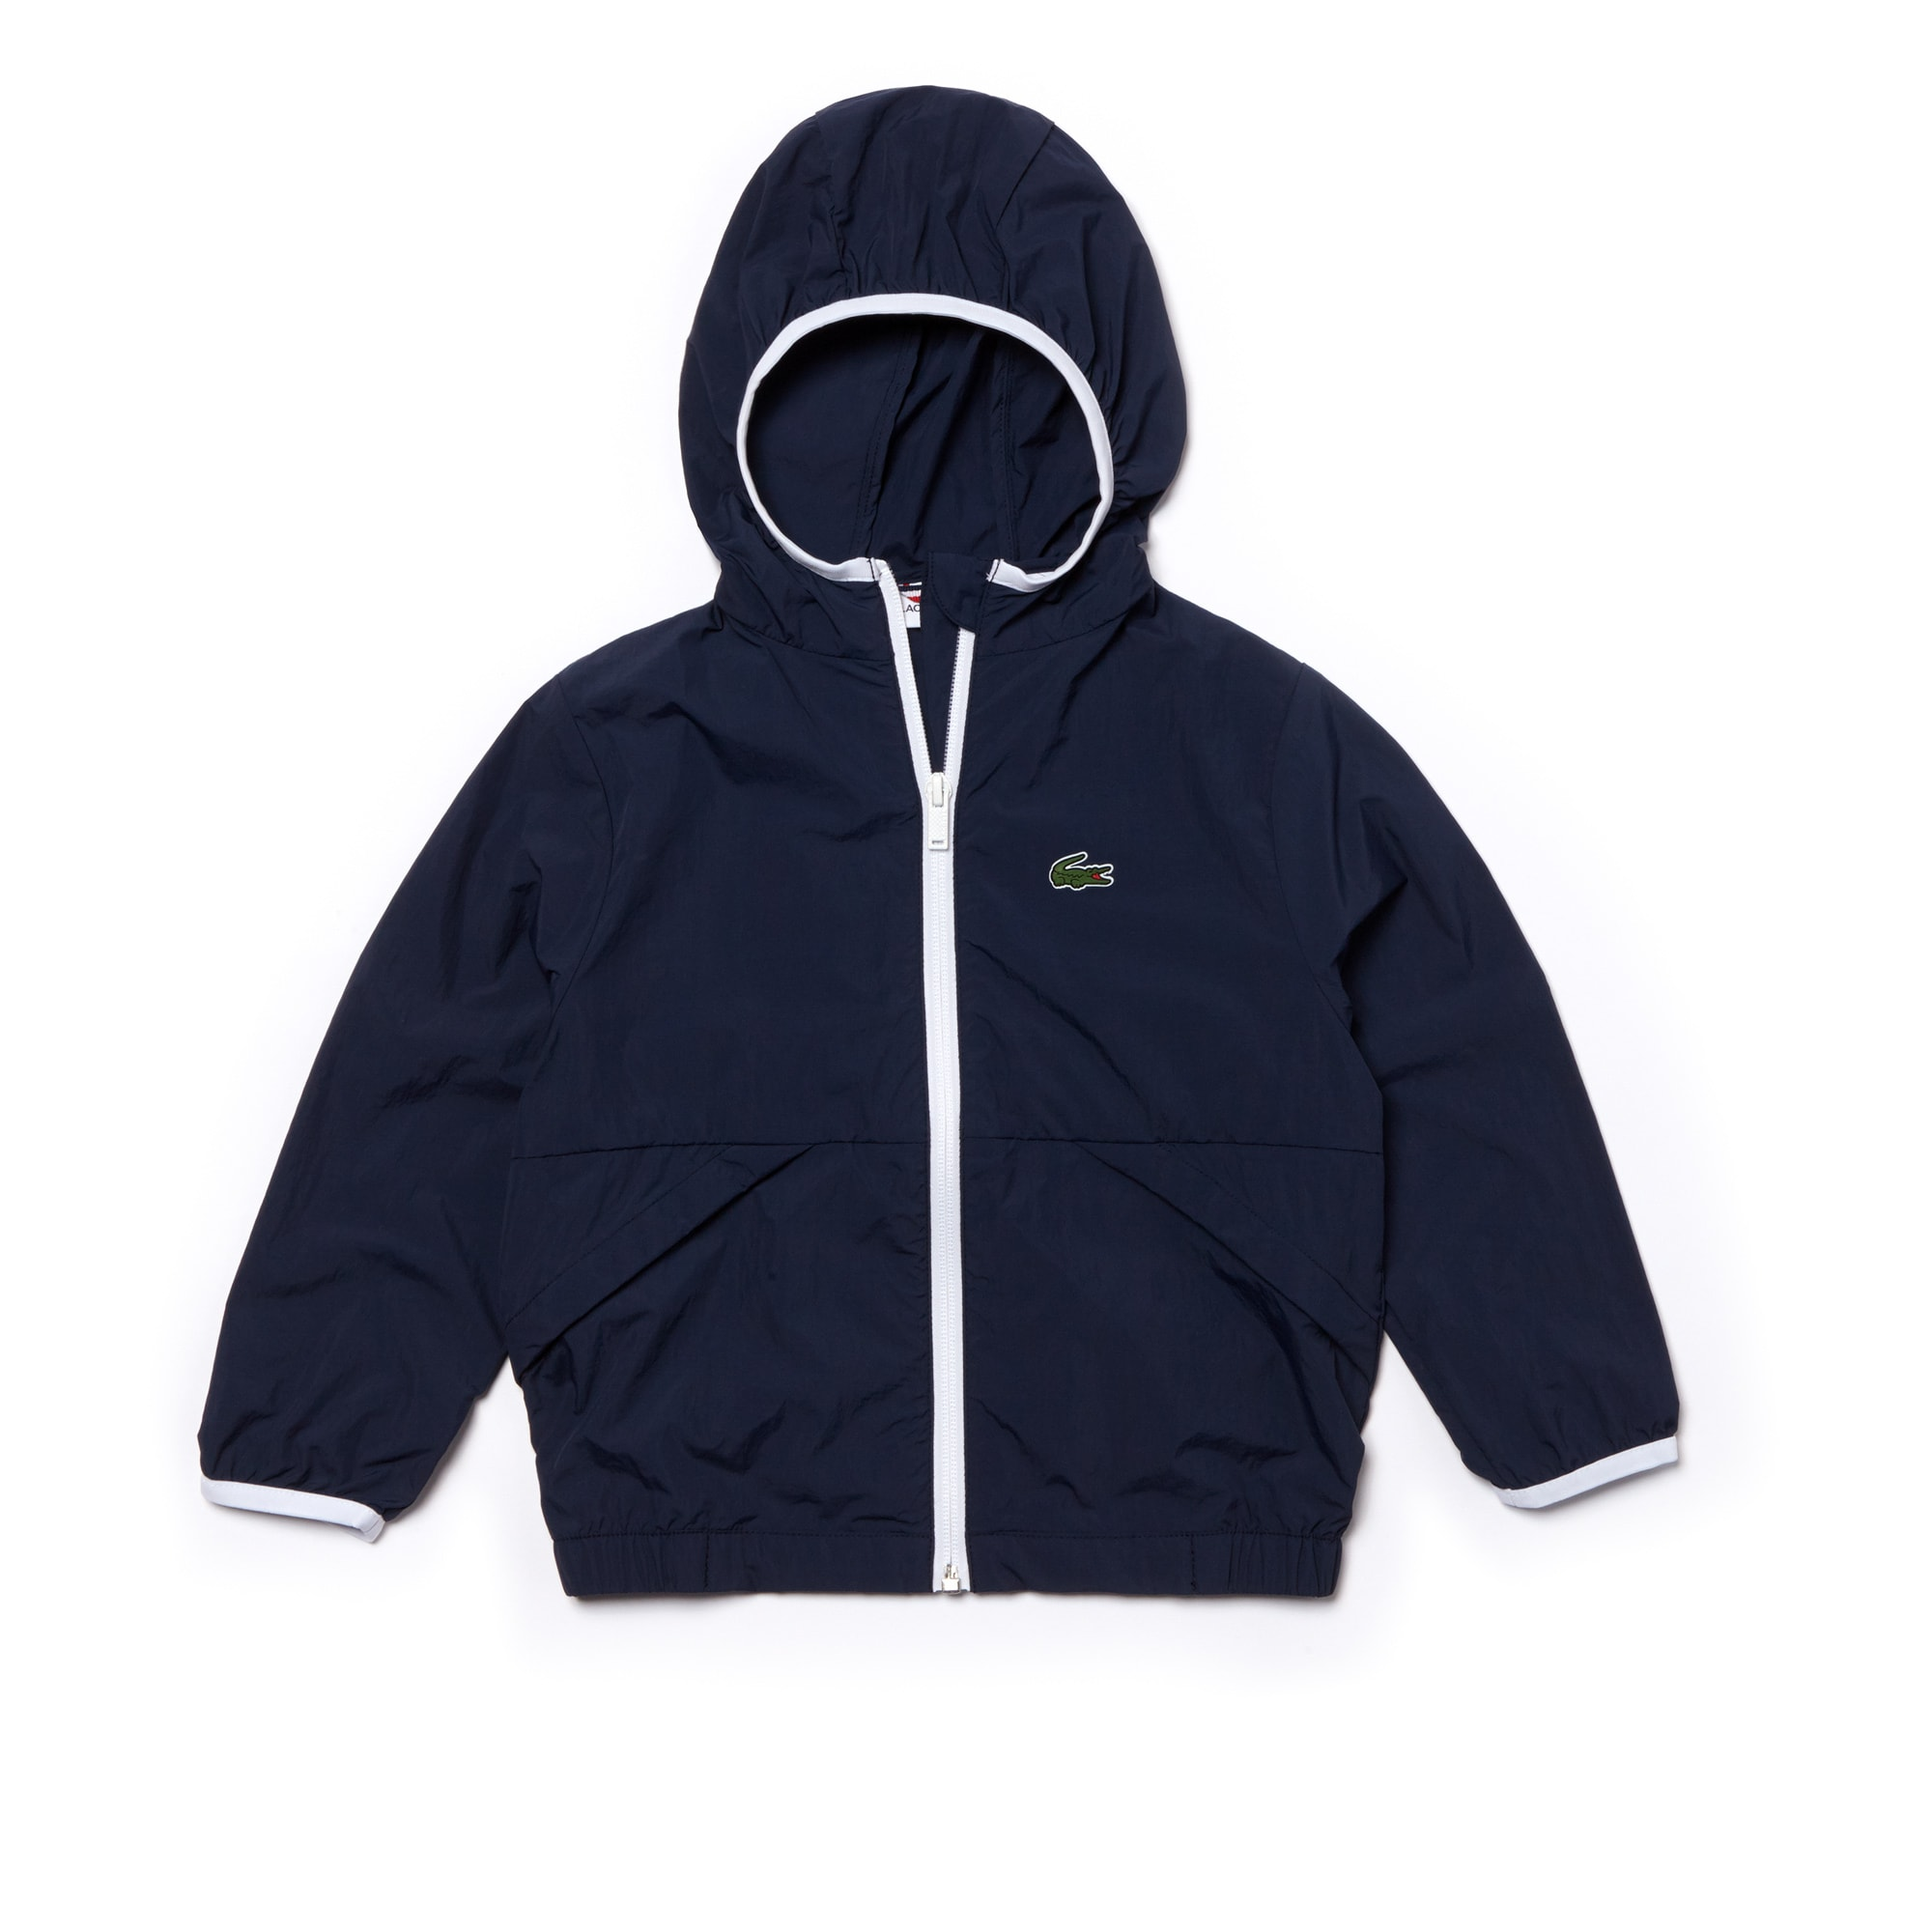 Boys' Contrast Accents Hooded Windbreaker